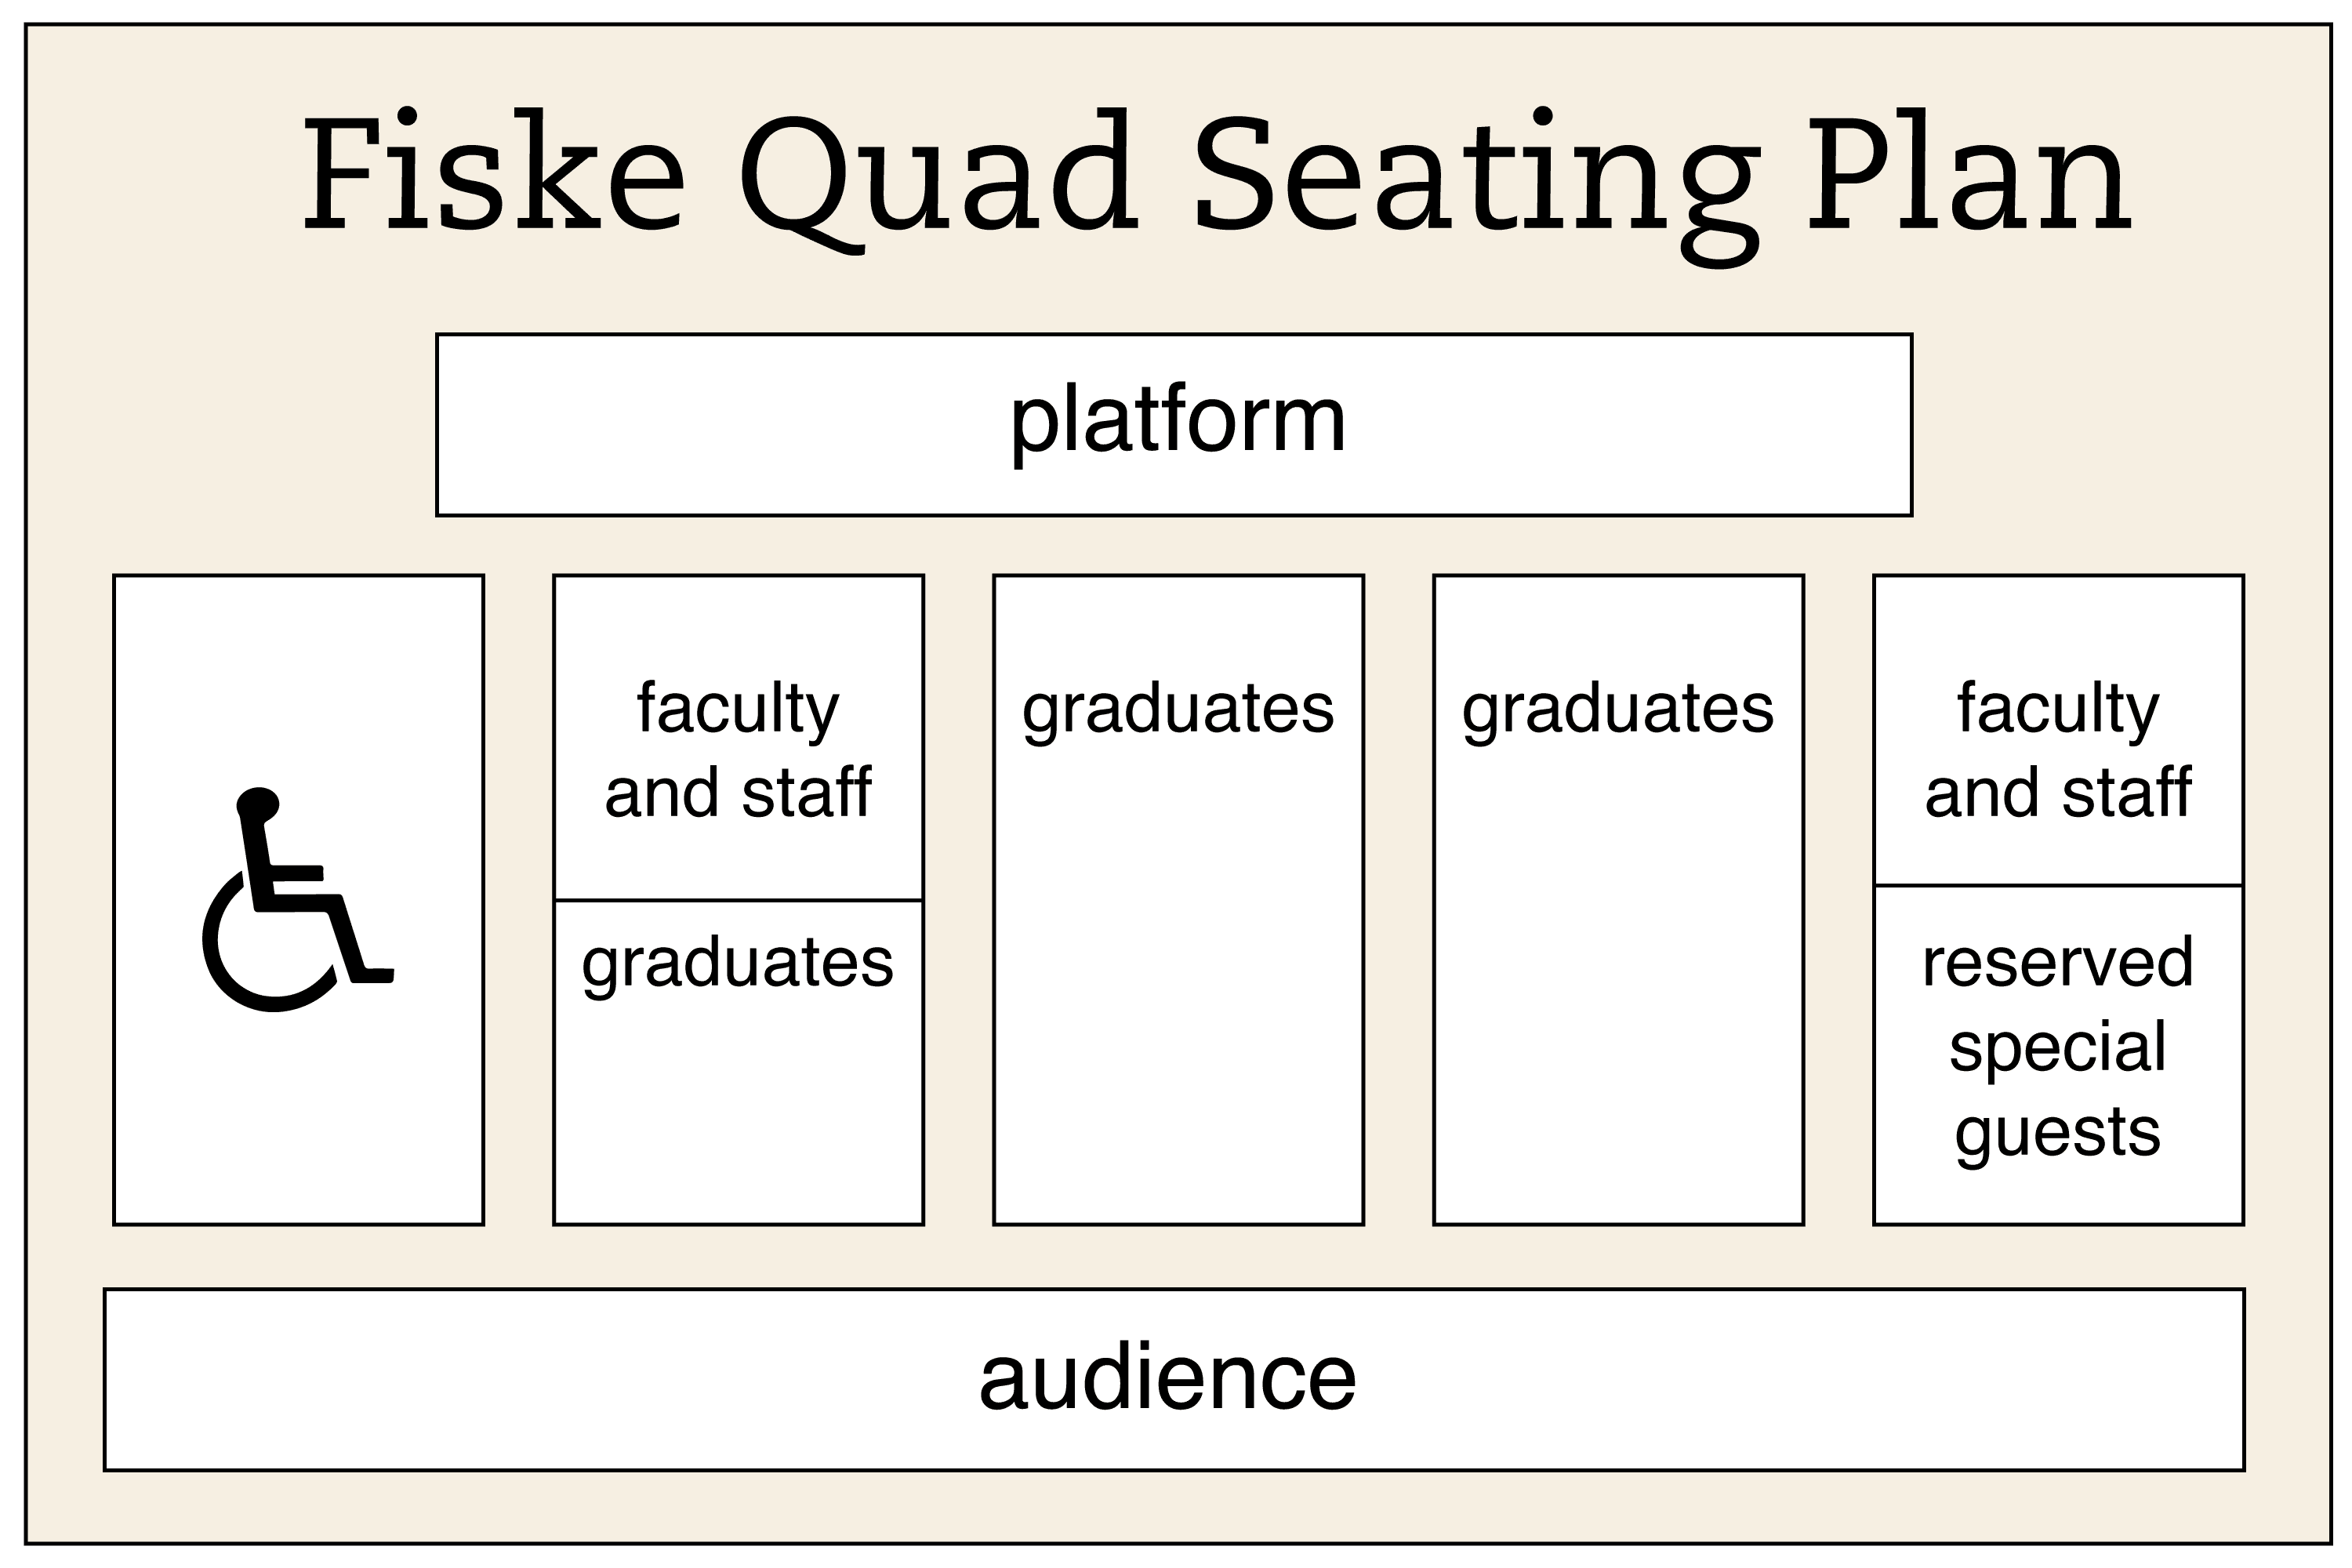 Commencement seating diagram, with platform at top; graduate, faculty, and staff seating below, and audience in rear